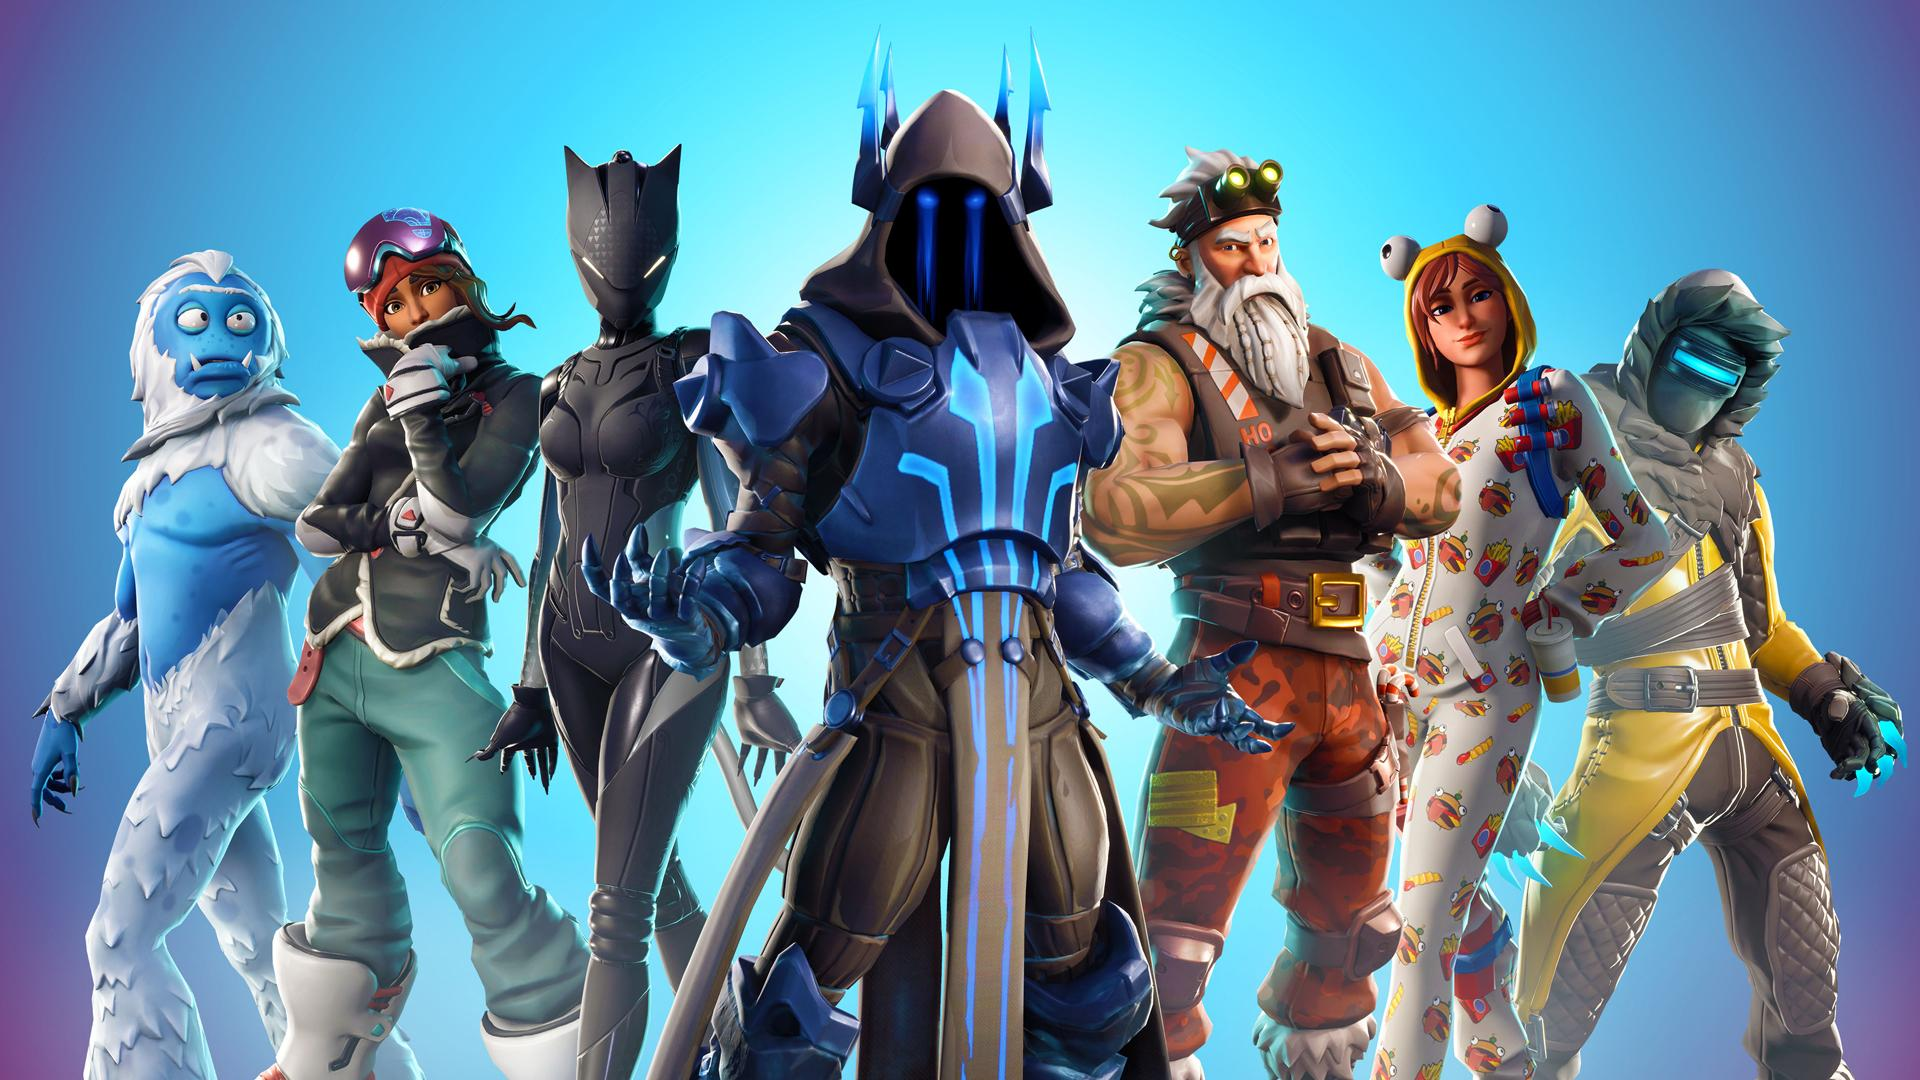 Fortnite Season 7 Wallpaper New Outfits 4422 Wallpapers and 1920x1080